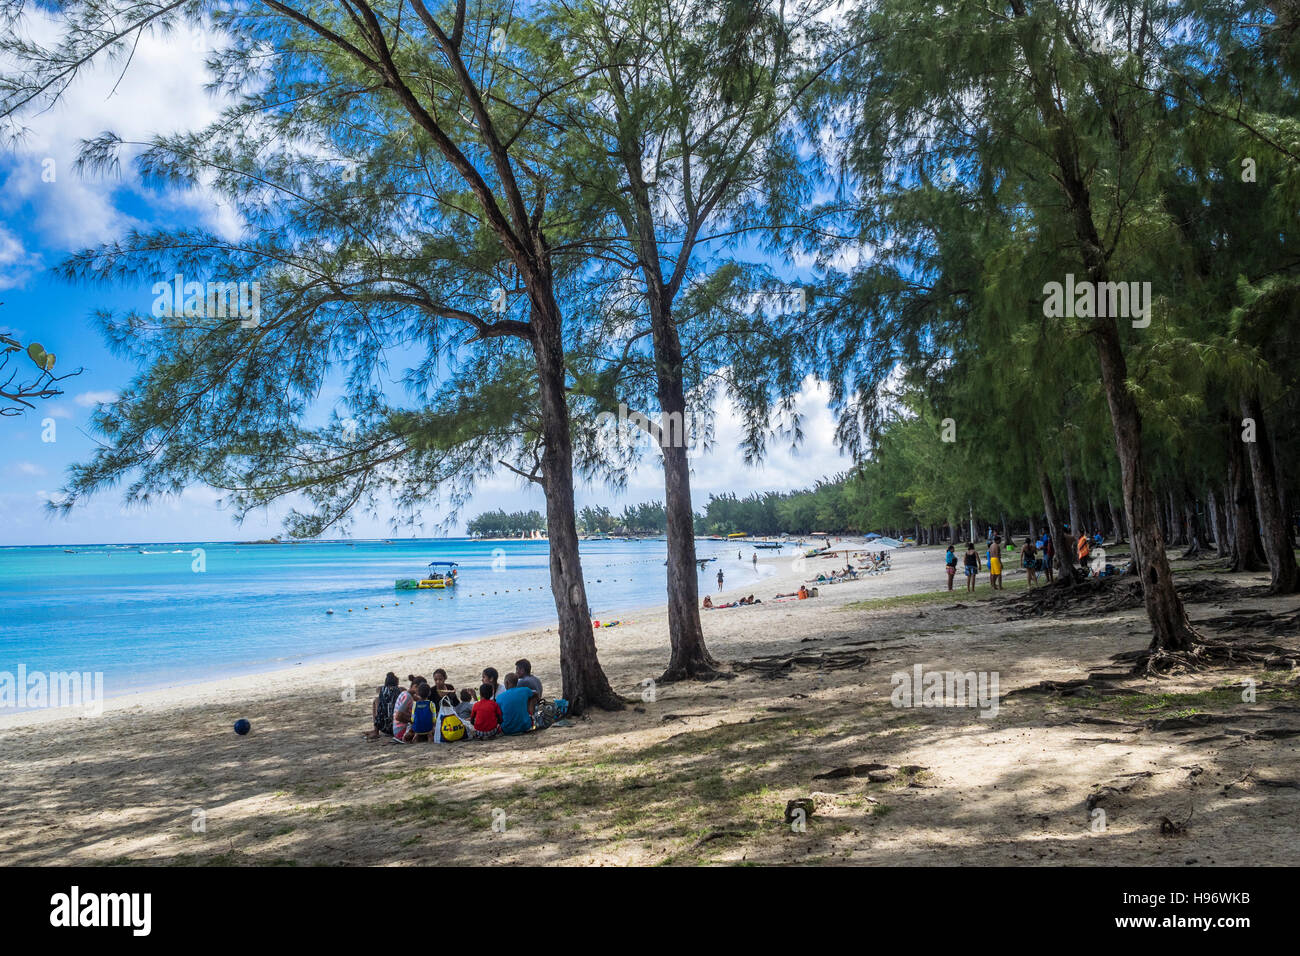 Family picnicking in shade on beach, Mon Choisy, Mauritius, Indian Ocean Stock Photo